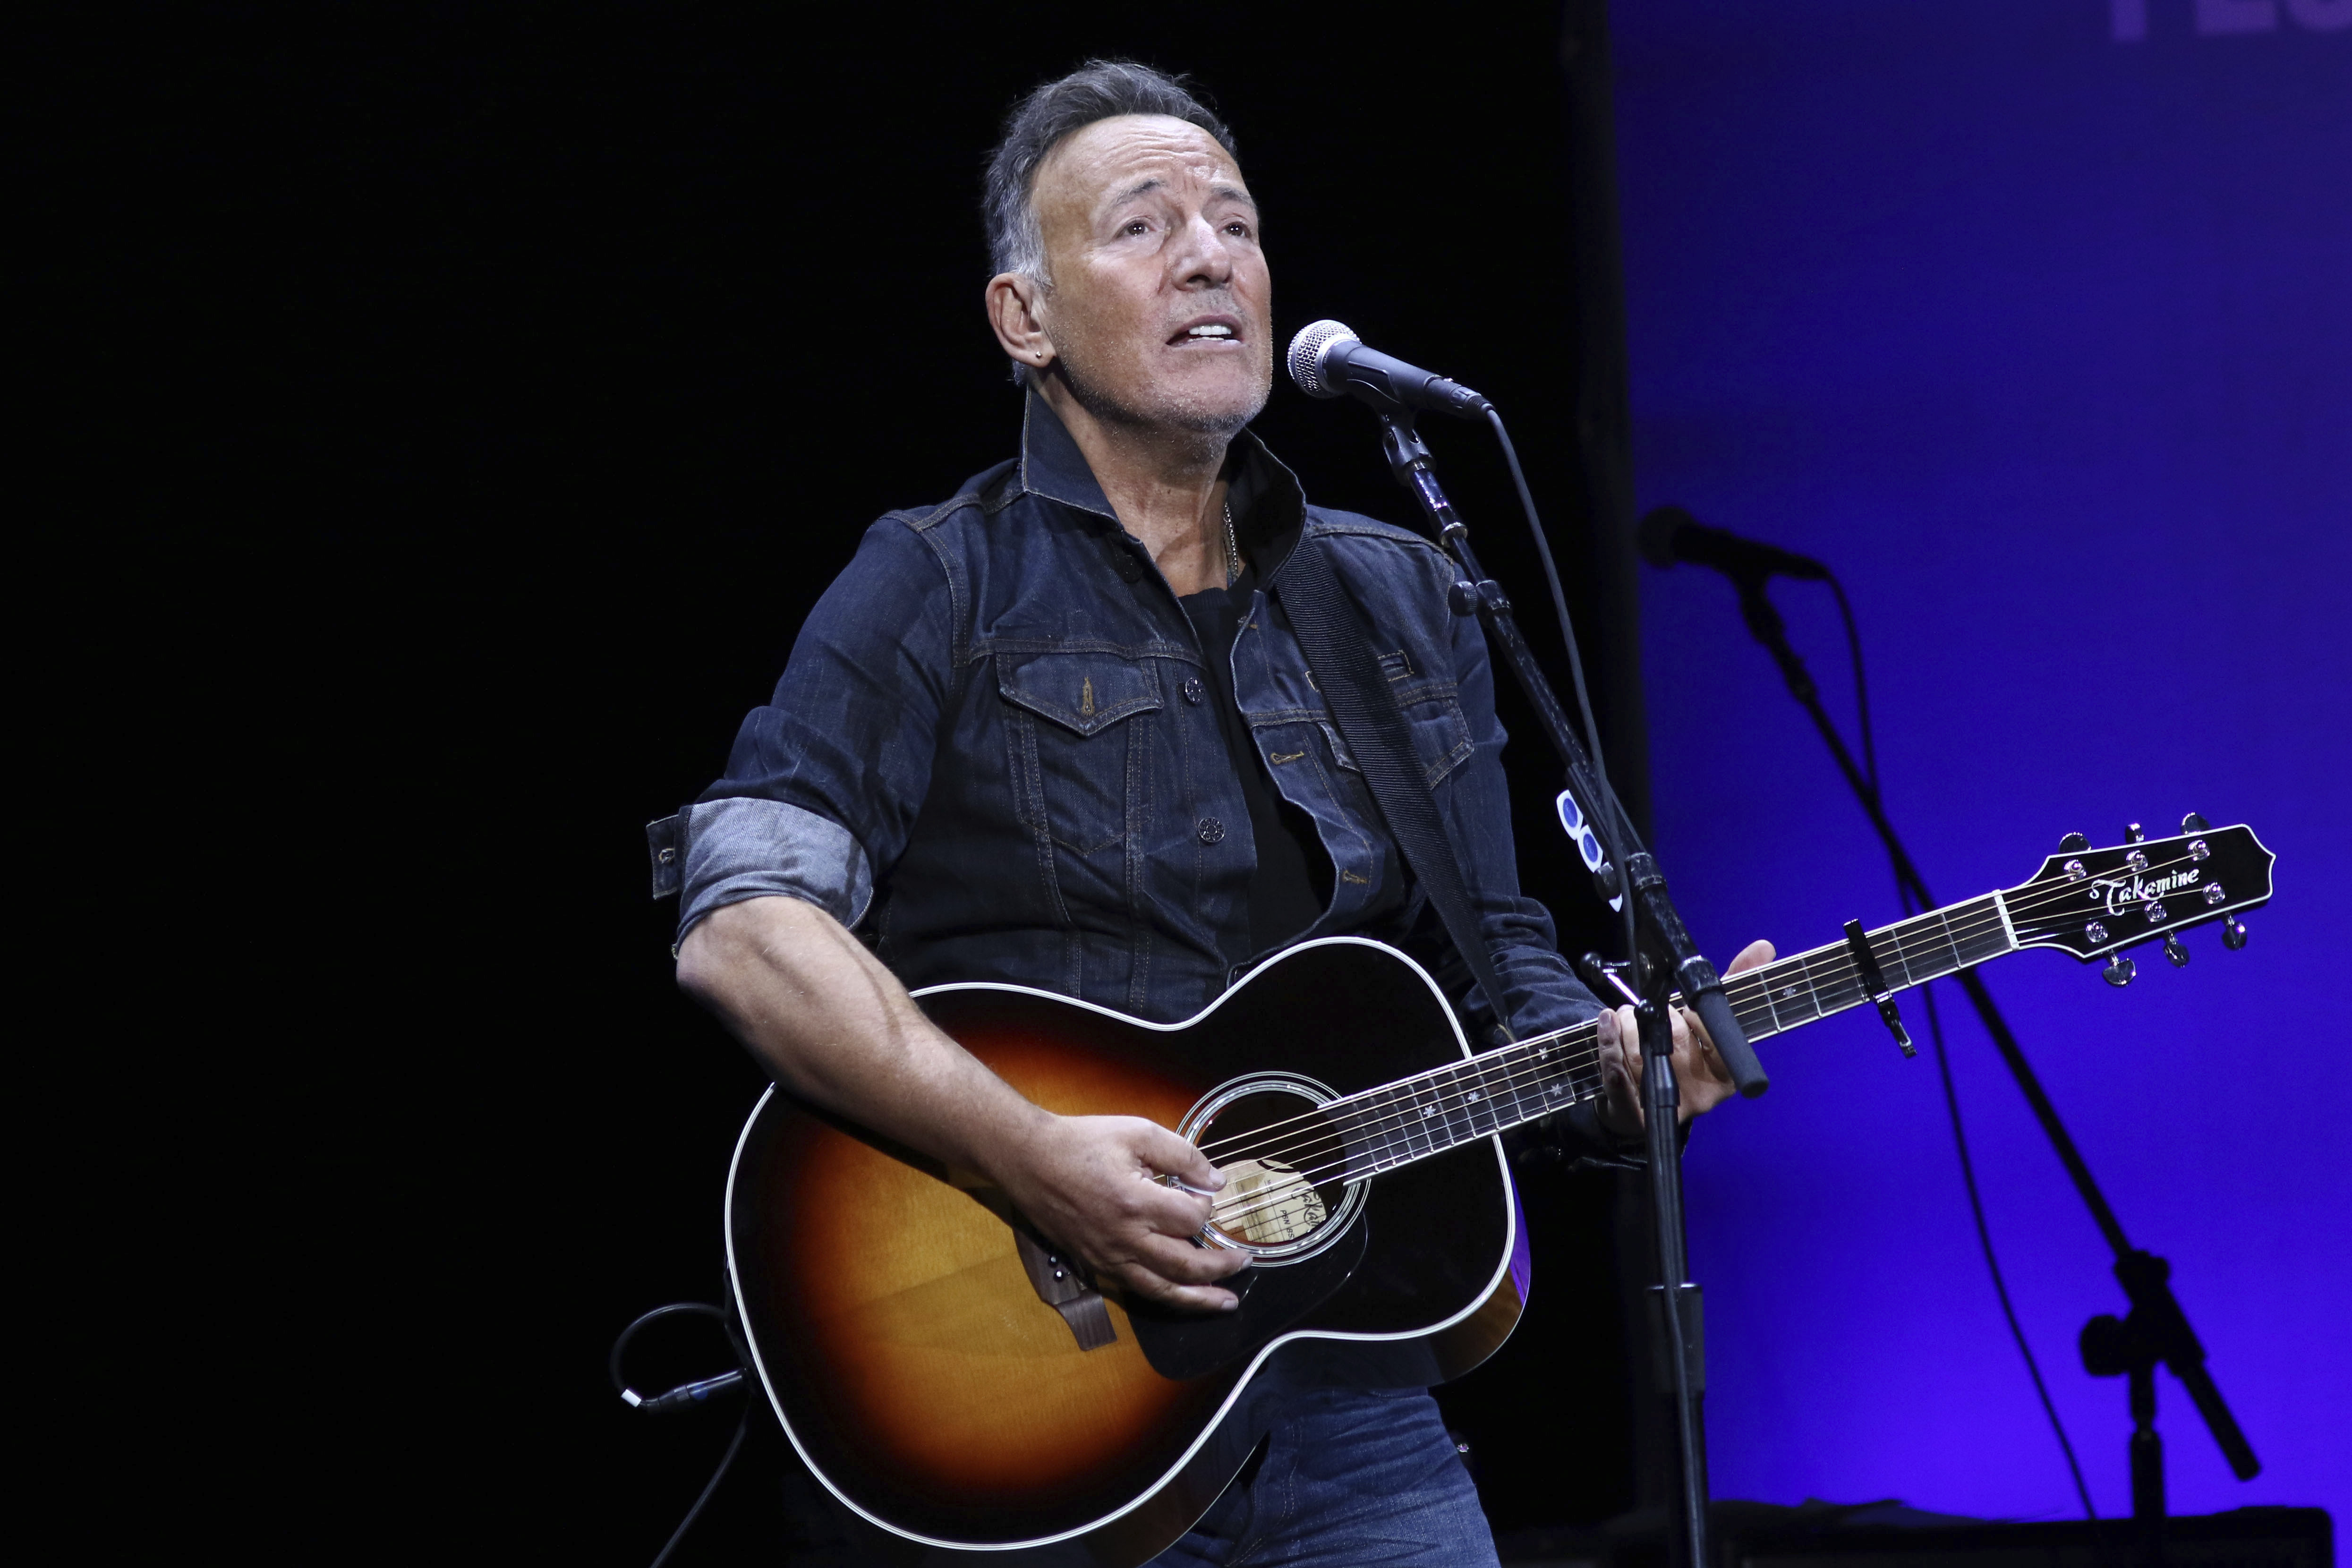 Bruce Springsteen performs at the 13th annual Stand Up For Heroes benefit concert in support of the Bob Woodruff Foundation in New York on Nov. 4, 2019.